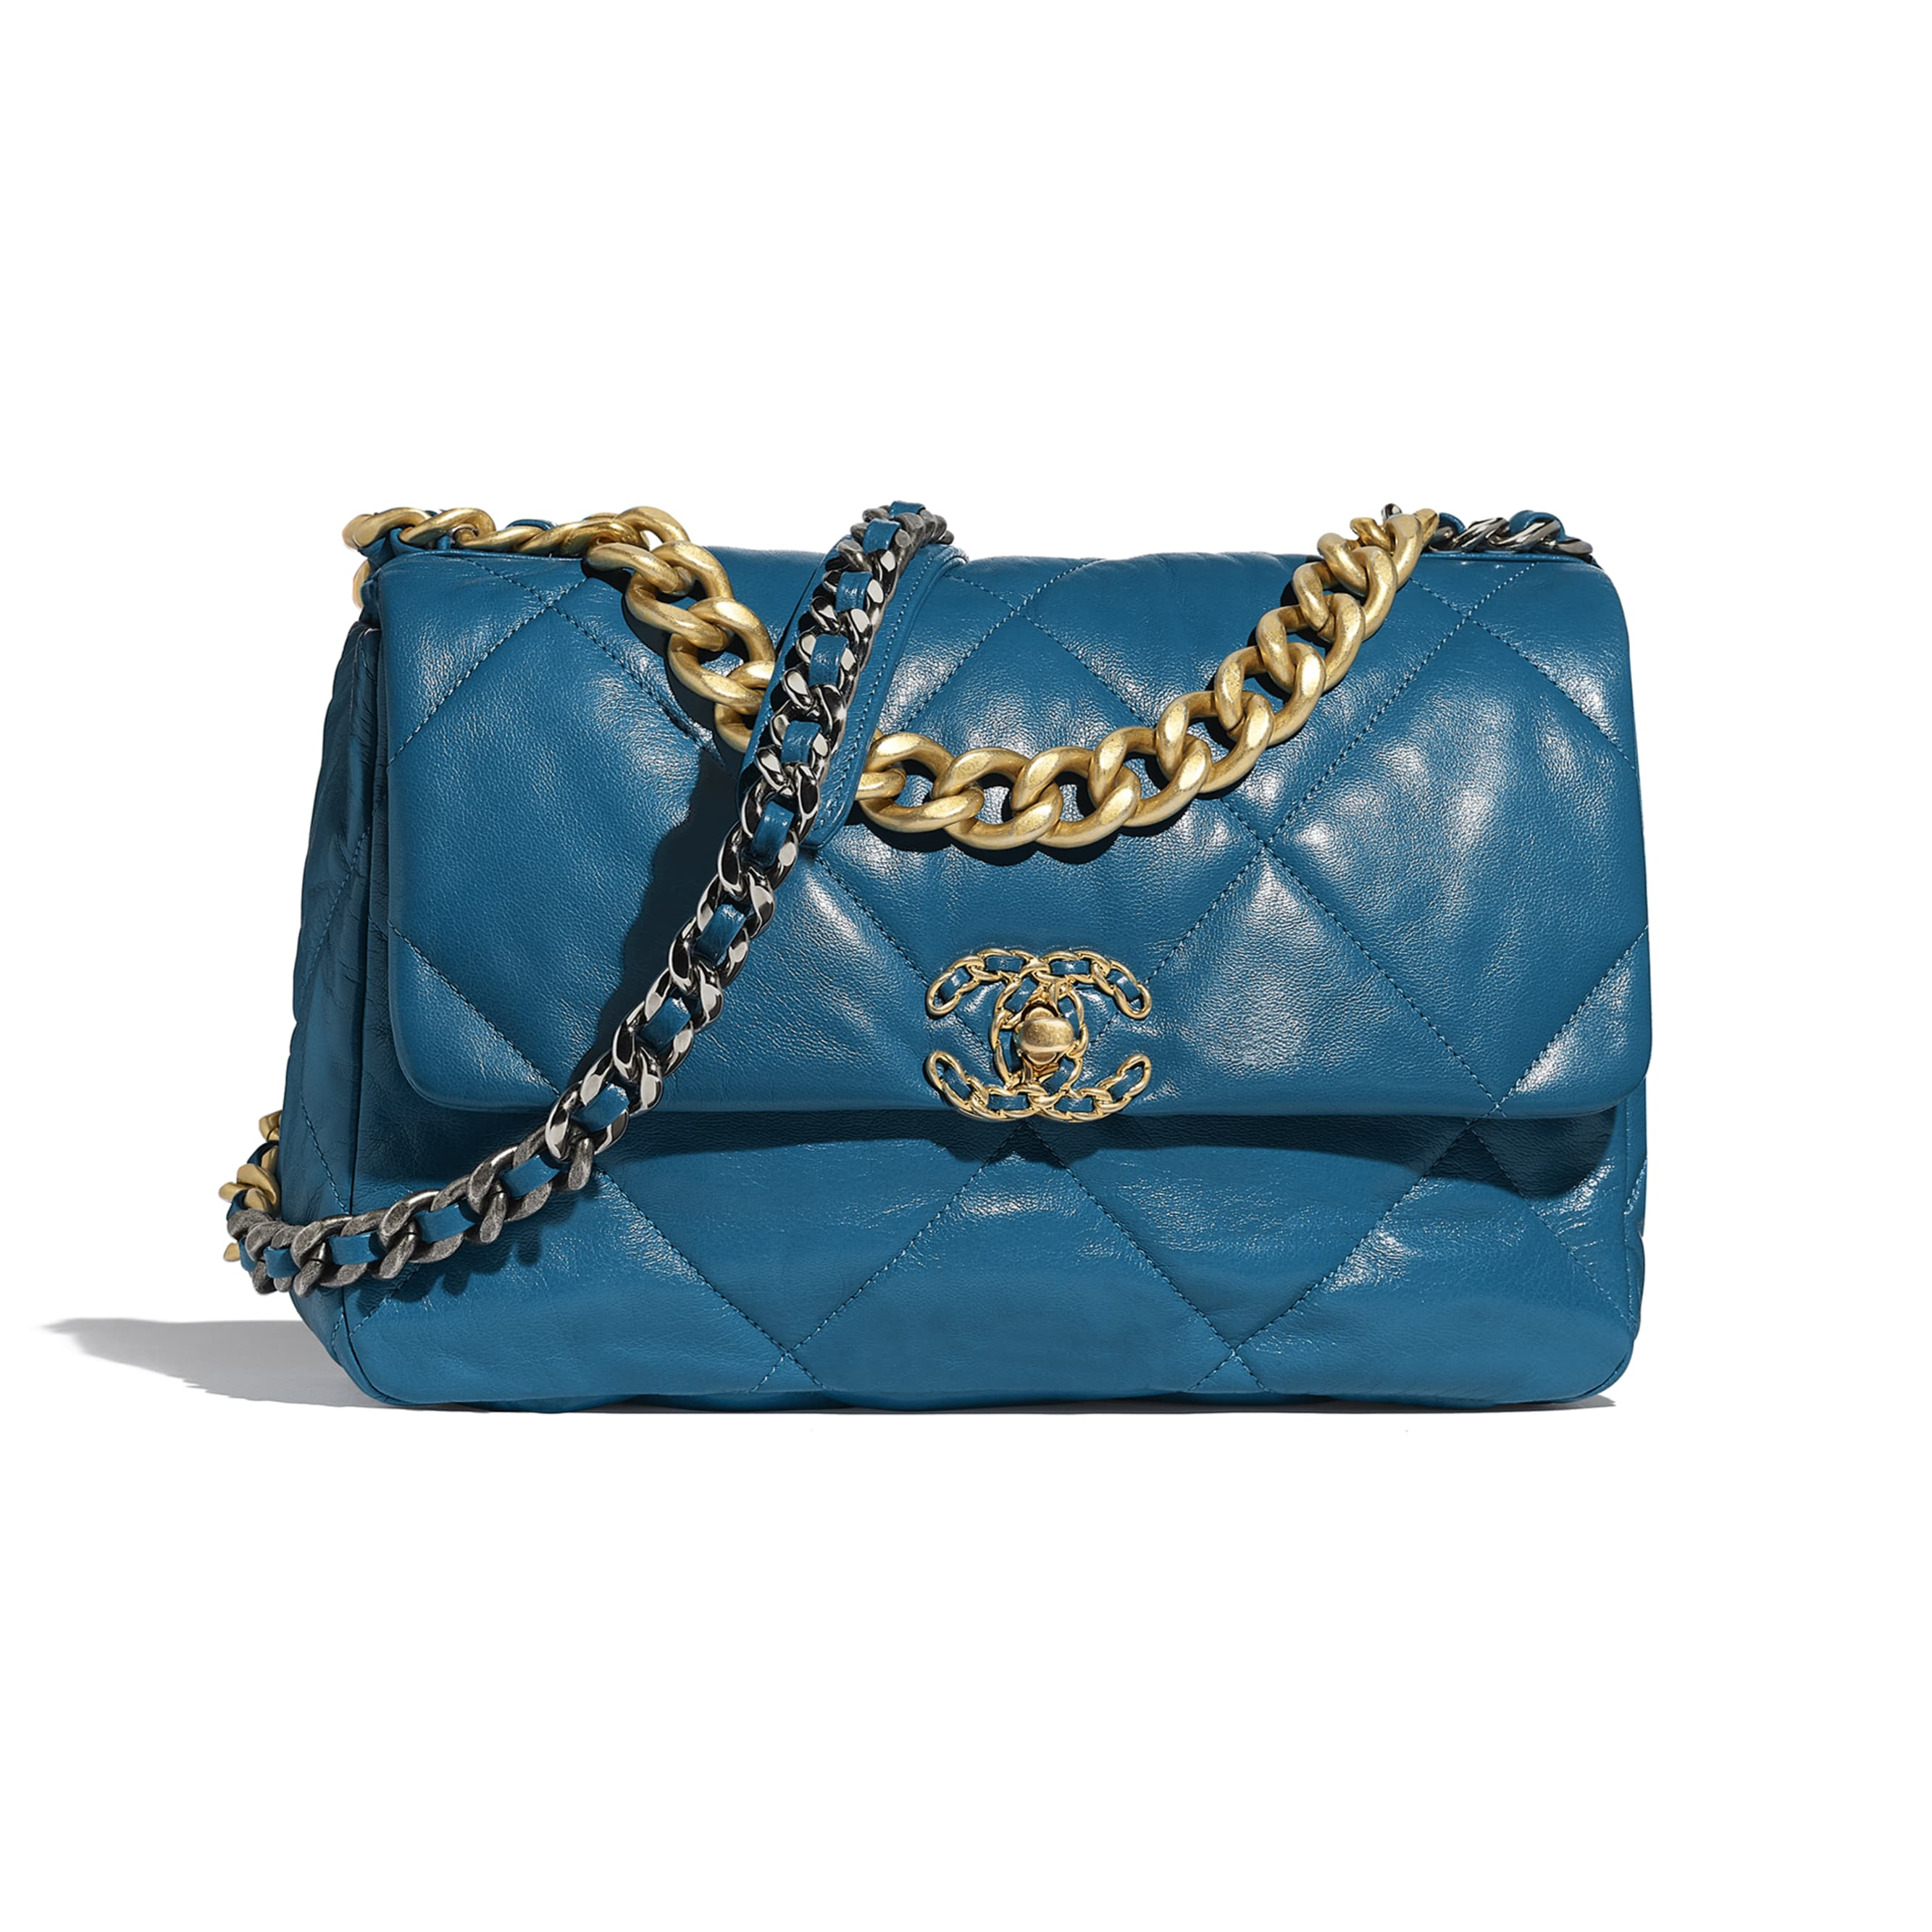 CHANEL 19 Large Flap Bag - Turquoise - Goatskin, Gold-Tone, Silver-Tone & Ruthenium-Finish Metal - Default view - see standard sized version